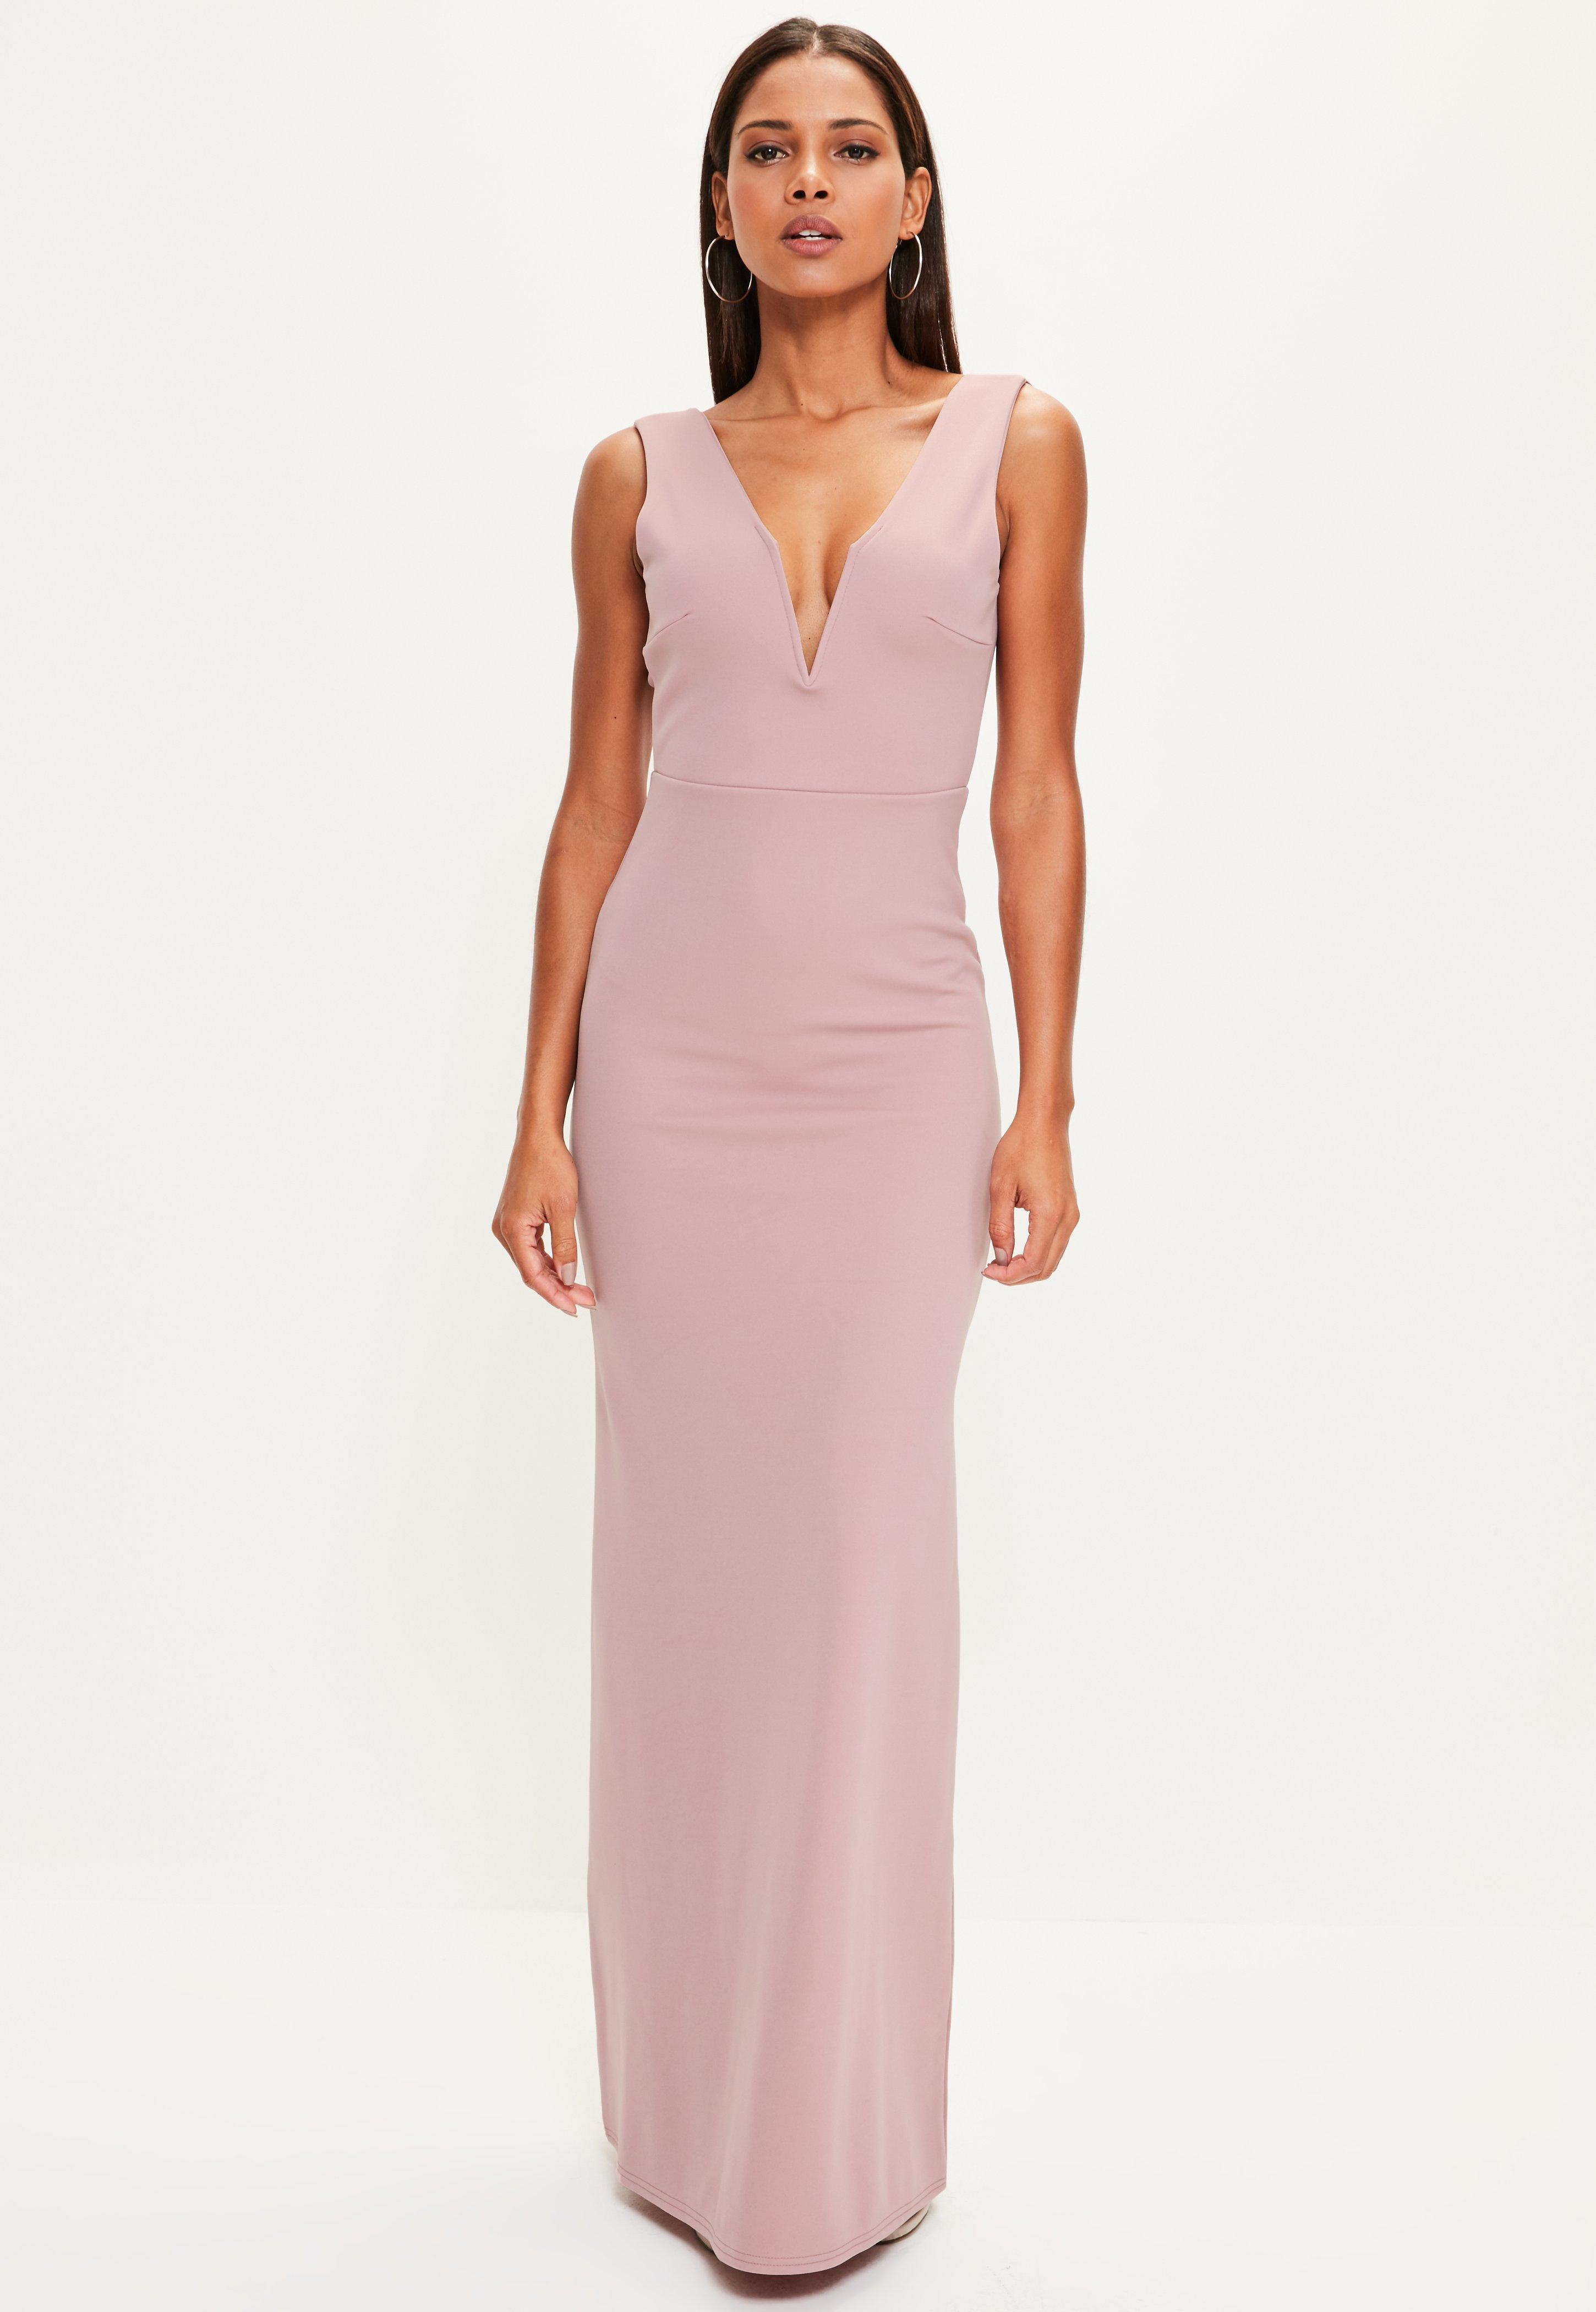 Missguided Plunge Maxi Dress Professional Online Cheap Great Deals Latest Collections pzYQokG5